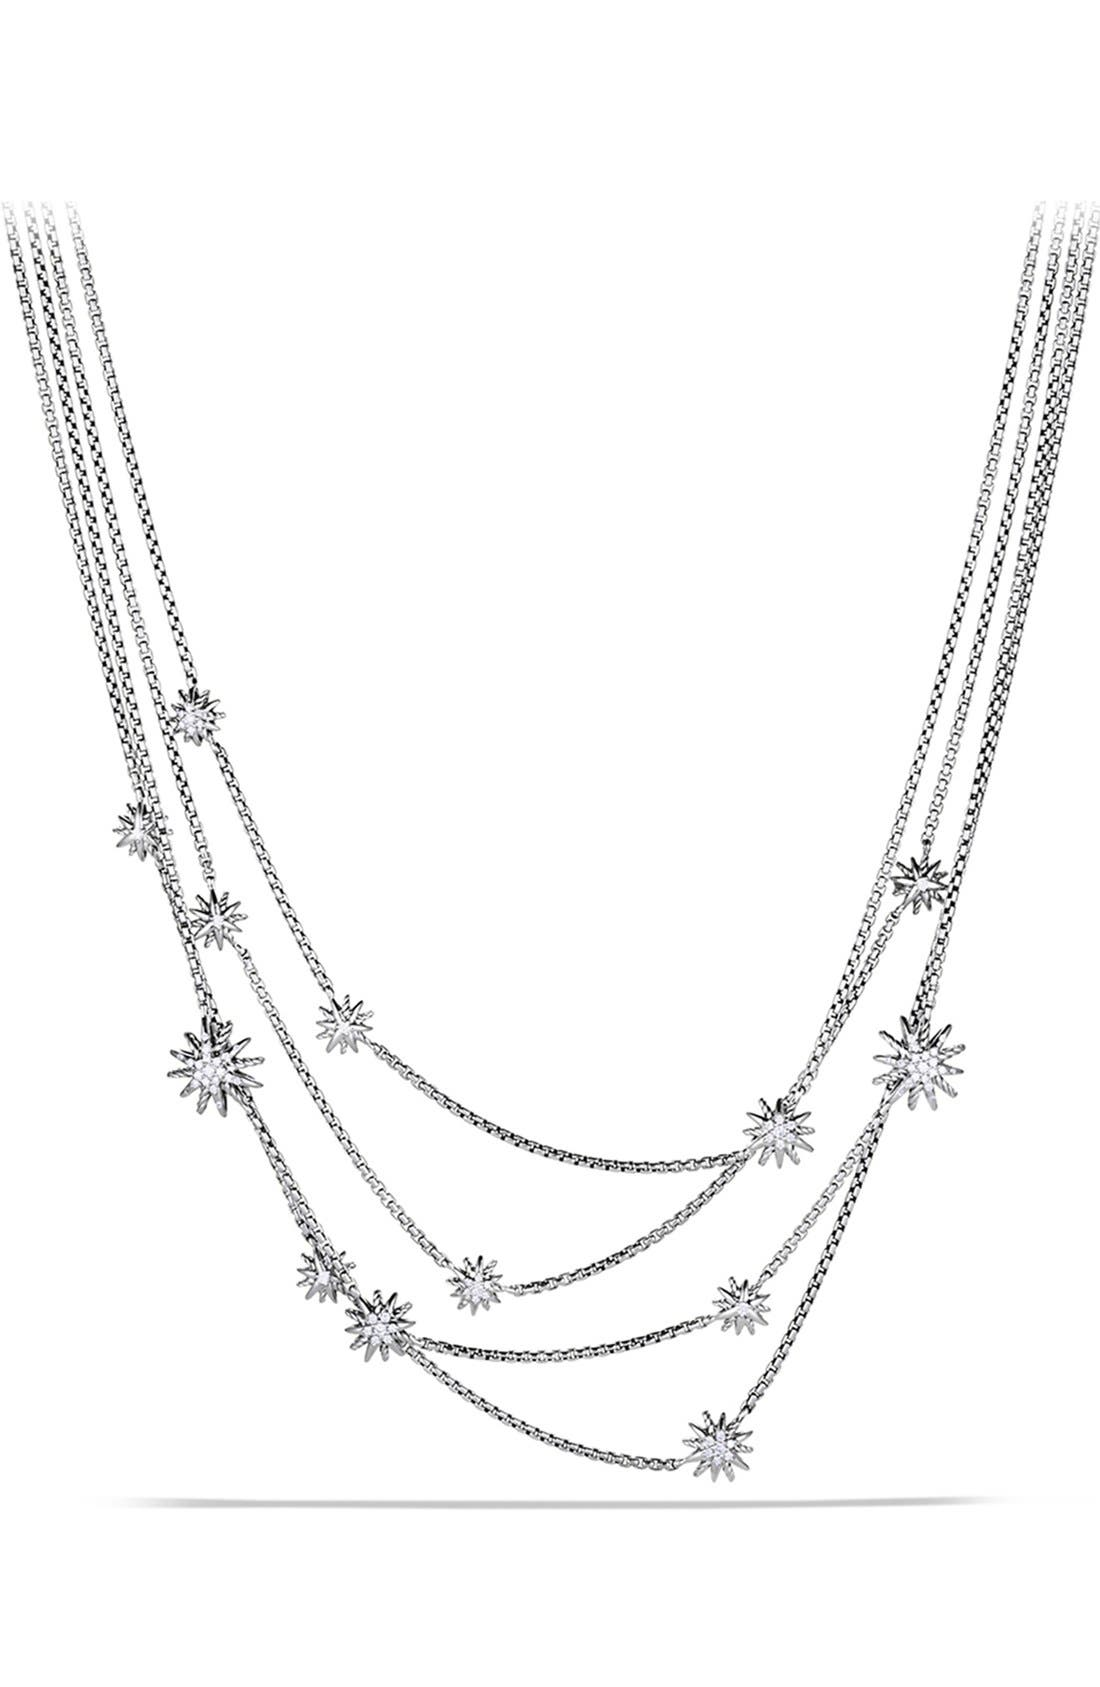 Alternate Image 1 Selected - David Yurman 'Starburst' Chain Necklace with Diamonds